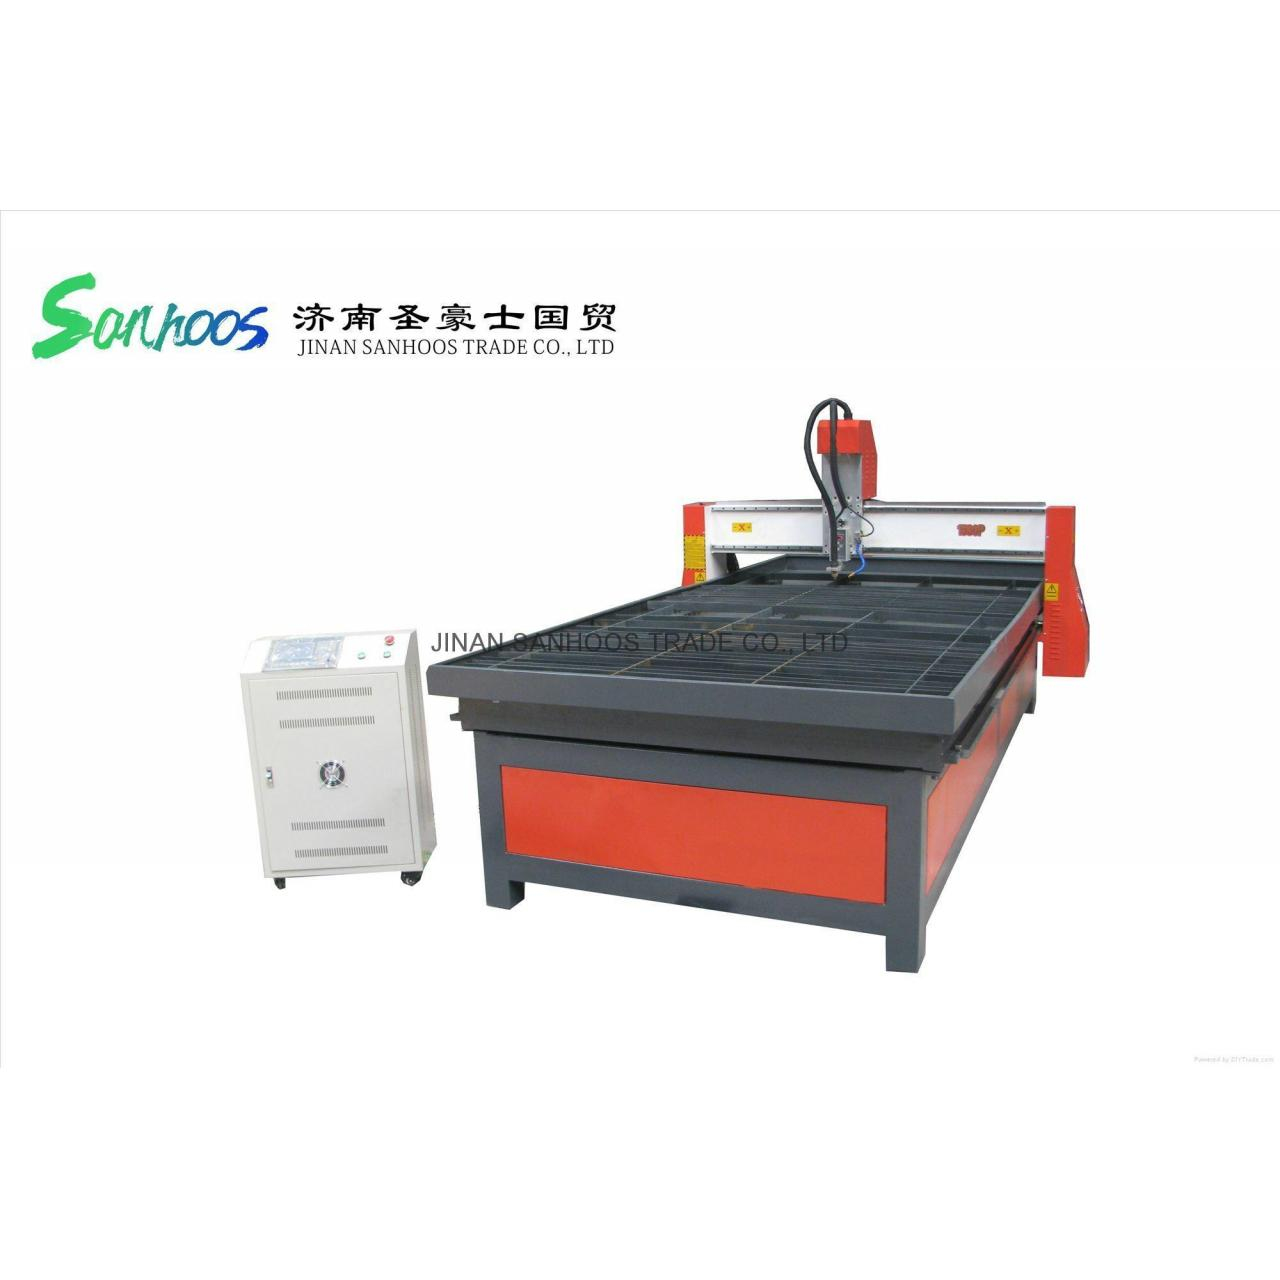 Buy cheap Sam 1530 Cheap Model THC Plasma CNC Cutting Machine from wholesalers